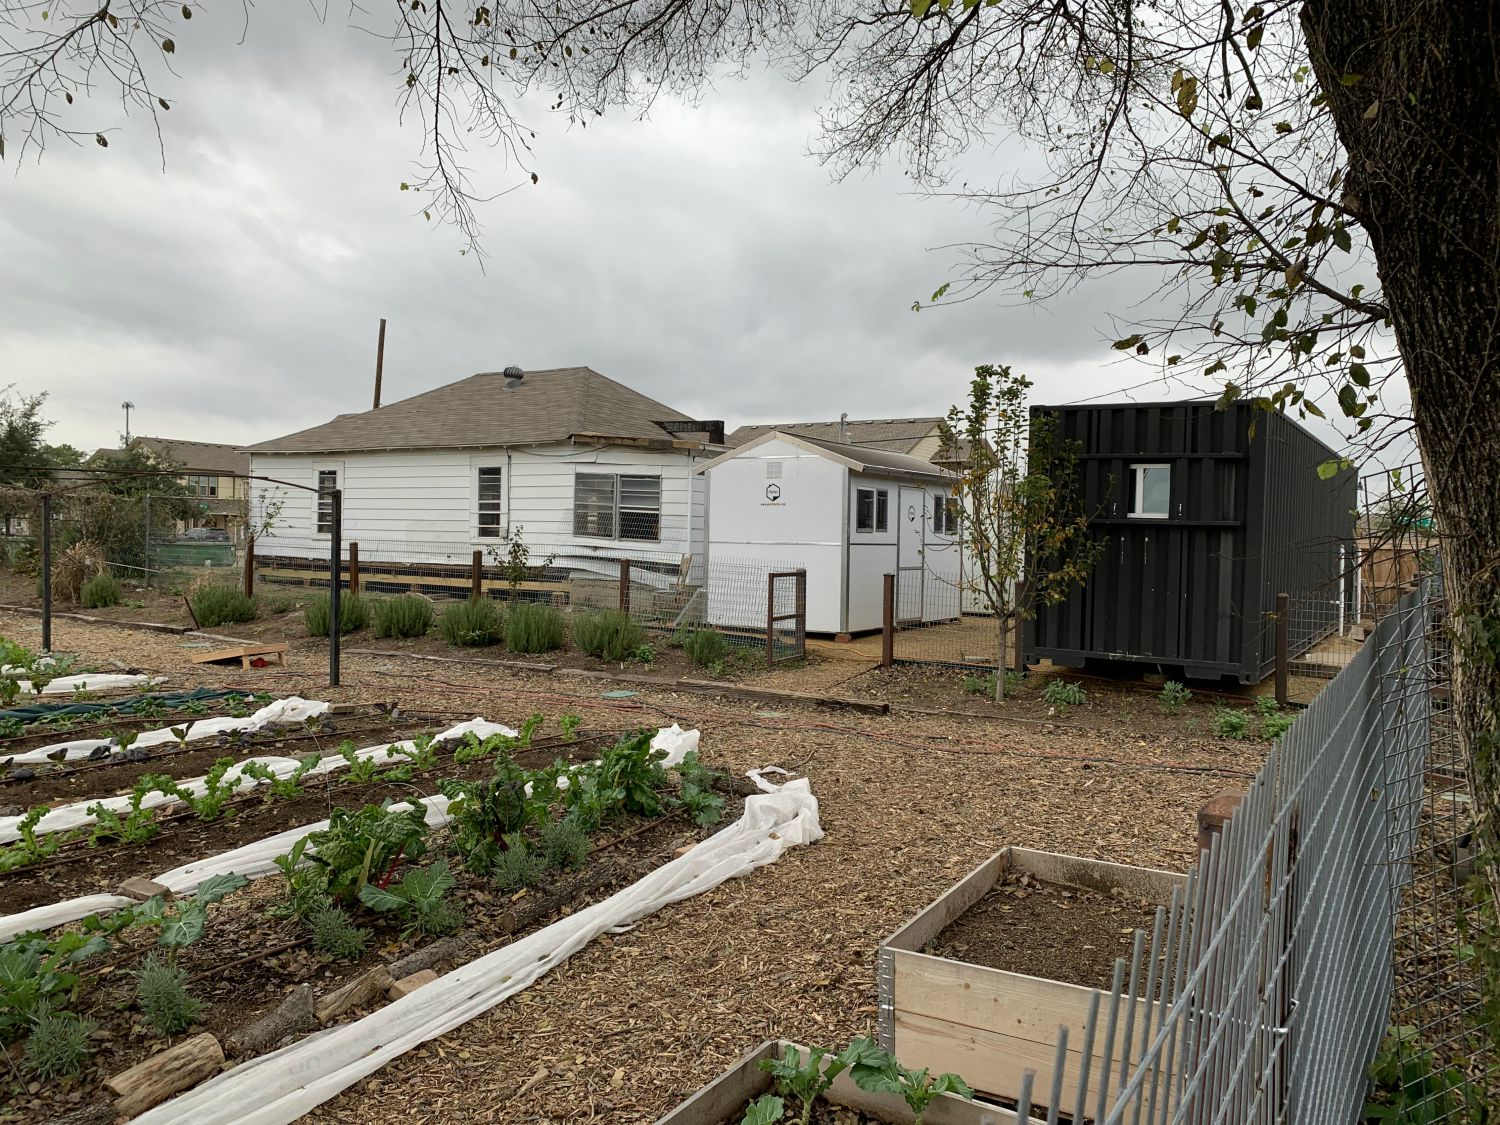 Behind Bonton Farms on Bexar Street, a homeless family and others live in Pallet shelters next to an empty house Daron Babcock hopes to transform into a bakery.